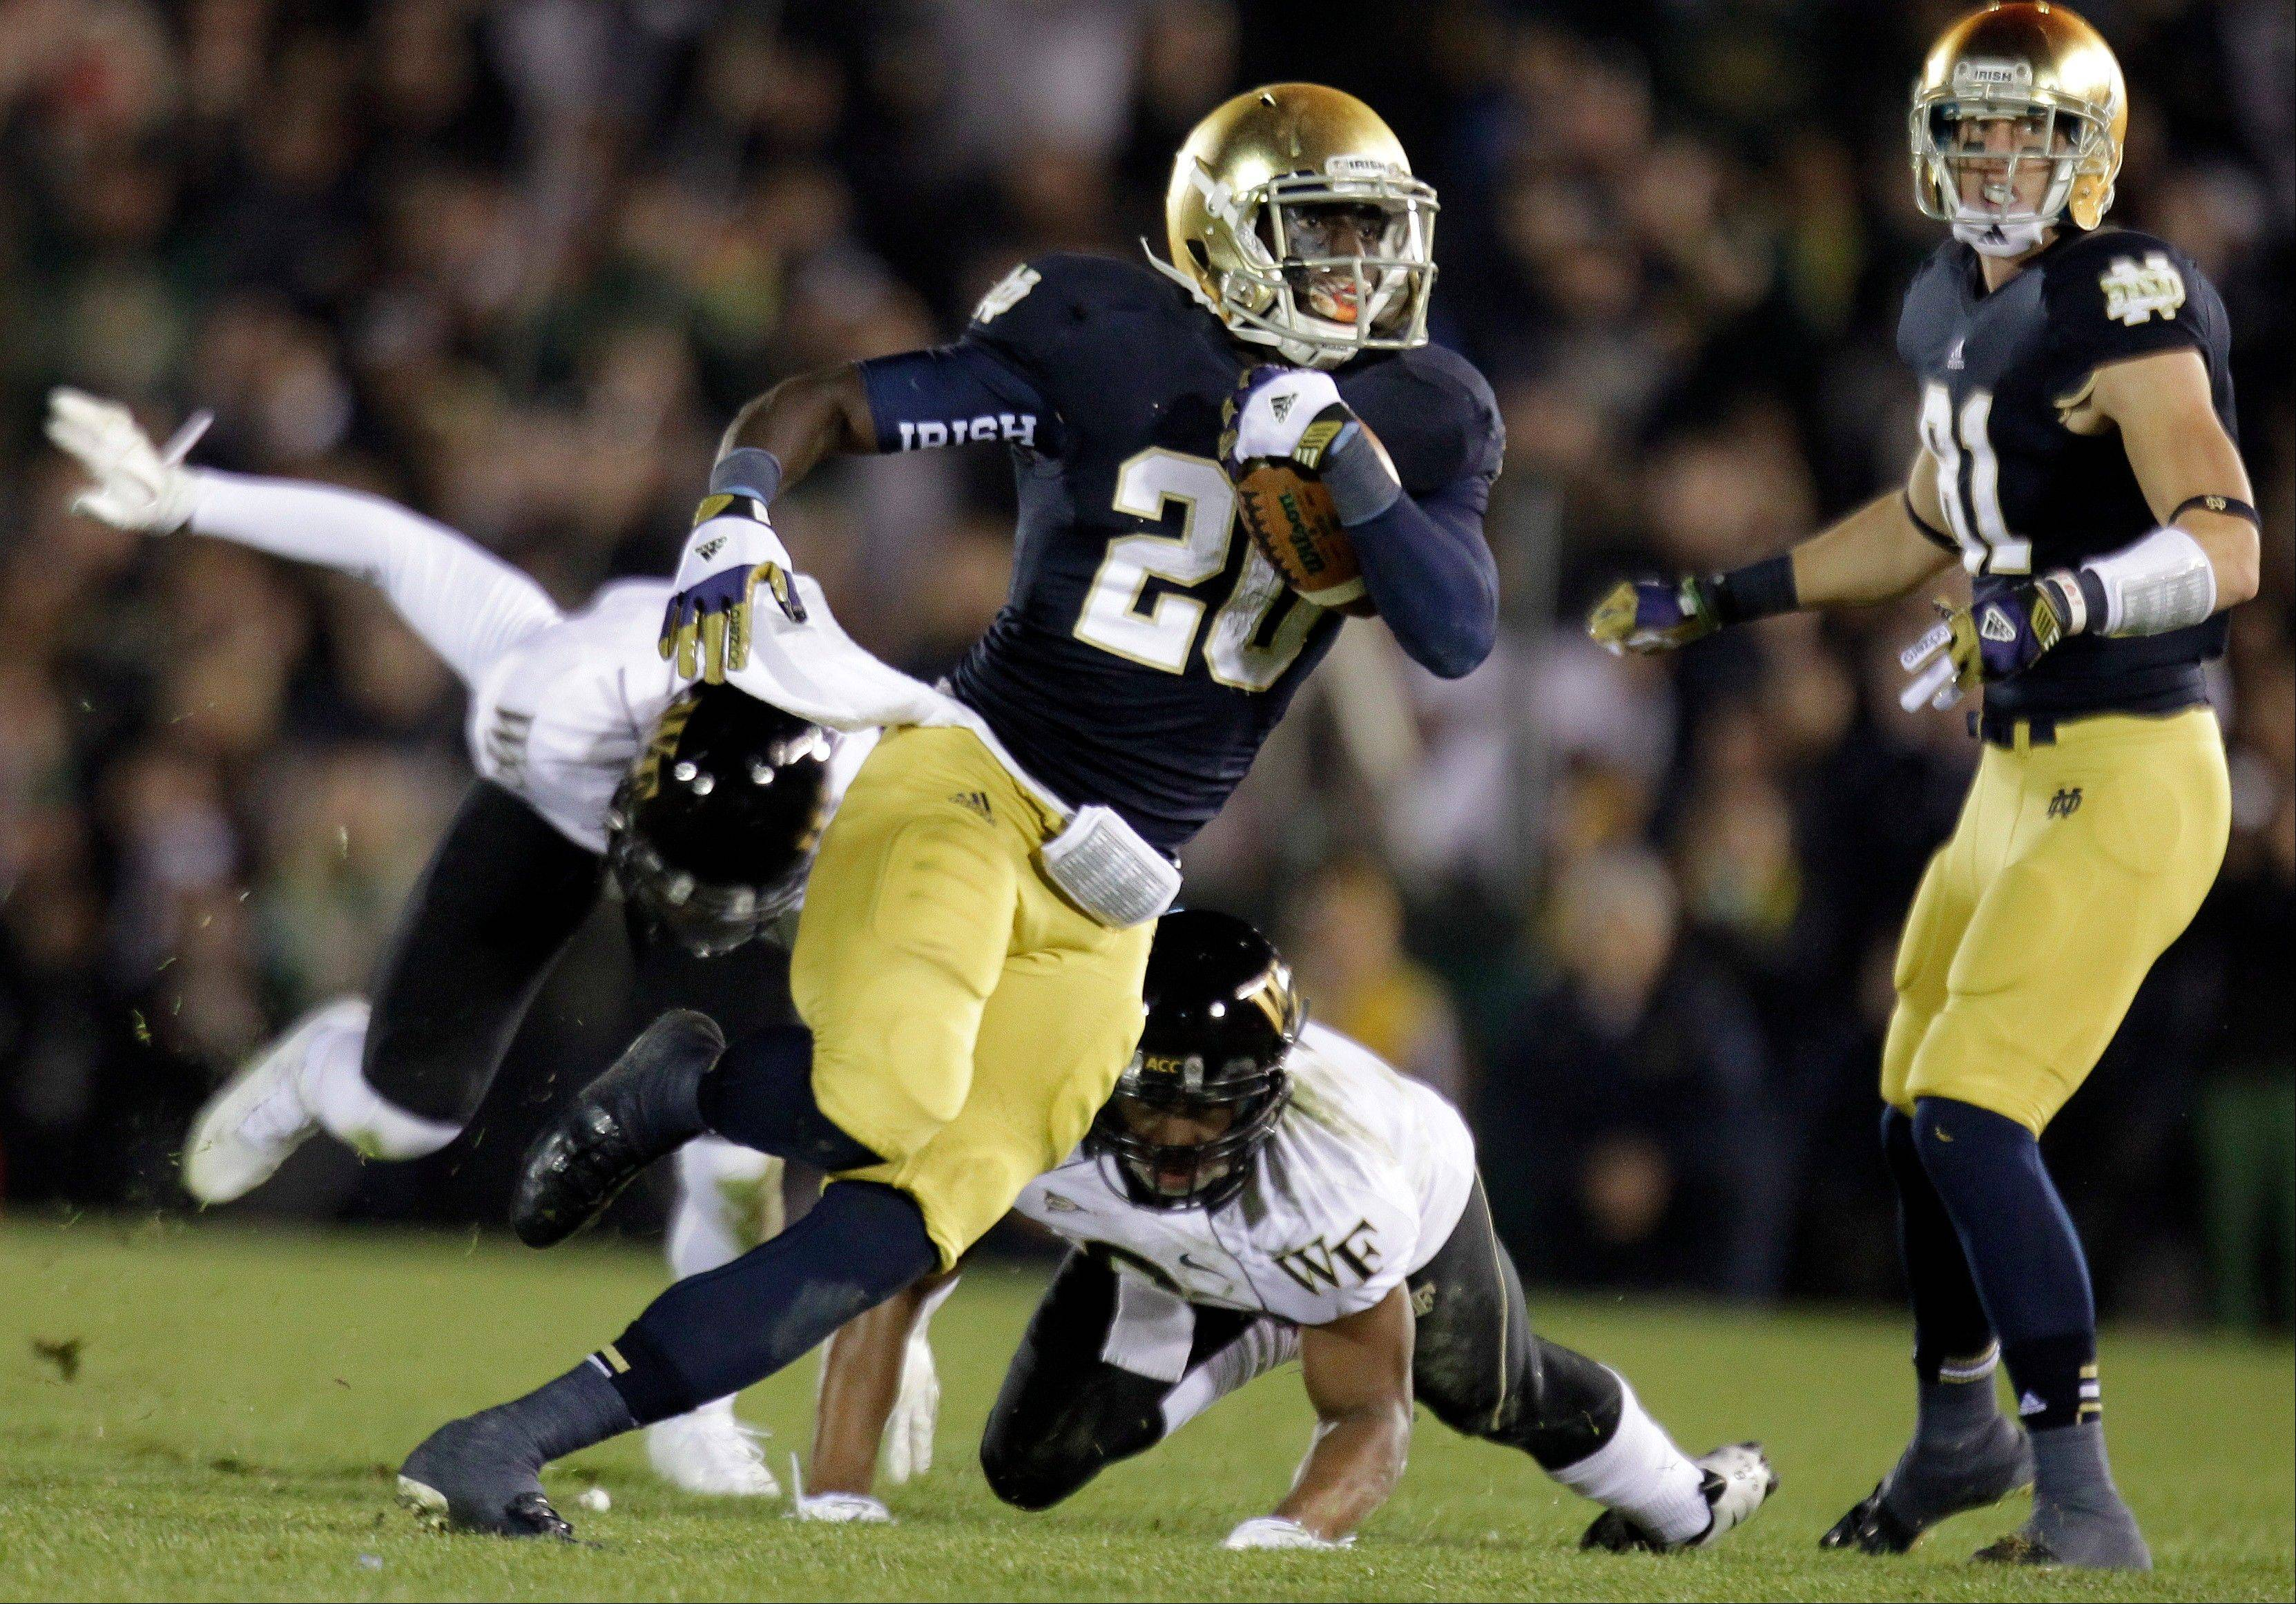 Notre Dame running back Cierre Wood (20) and his Fighting Irish teammates are just one win away from playing for the national title.